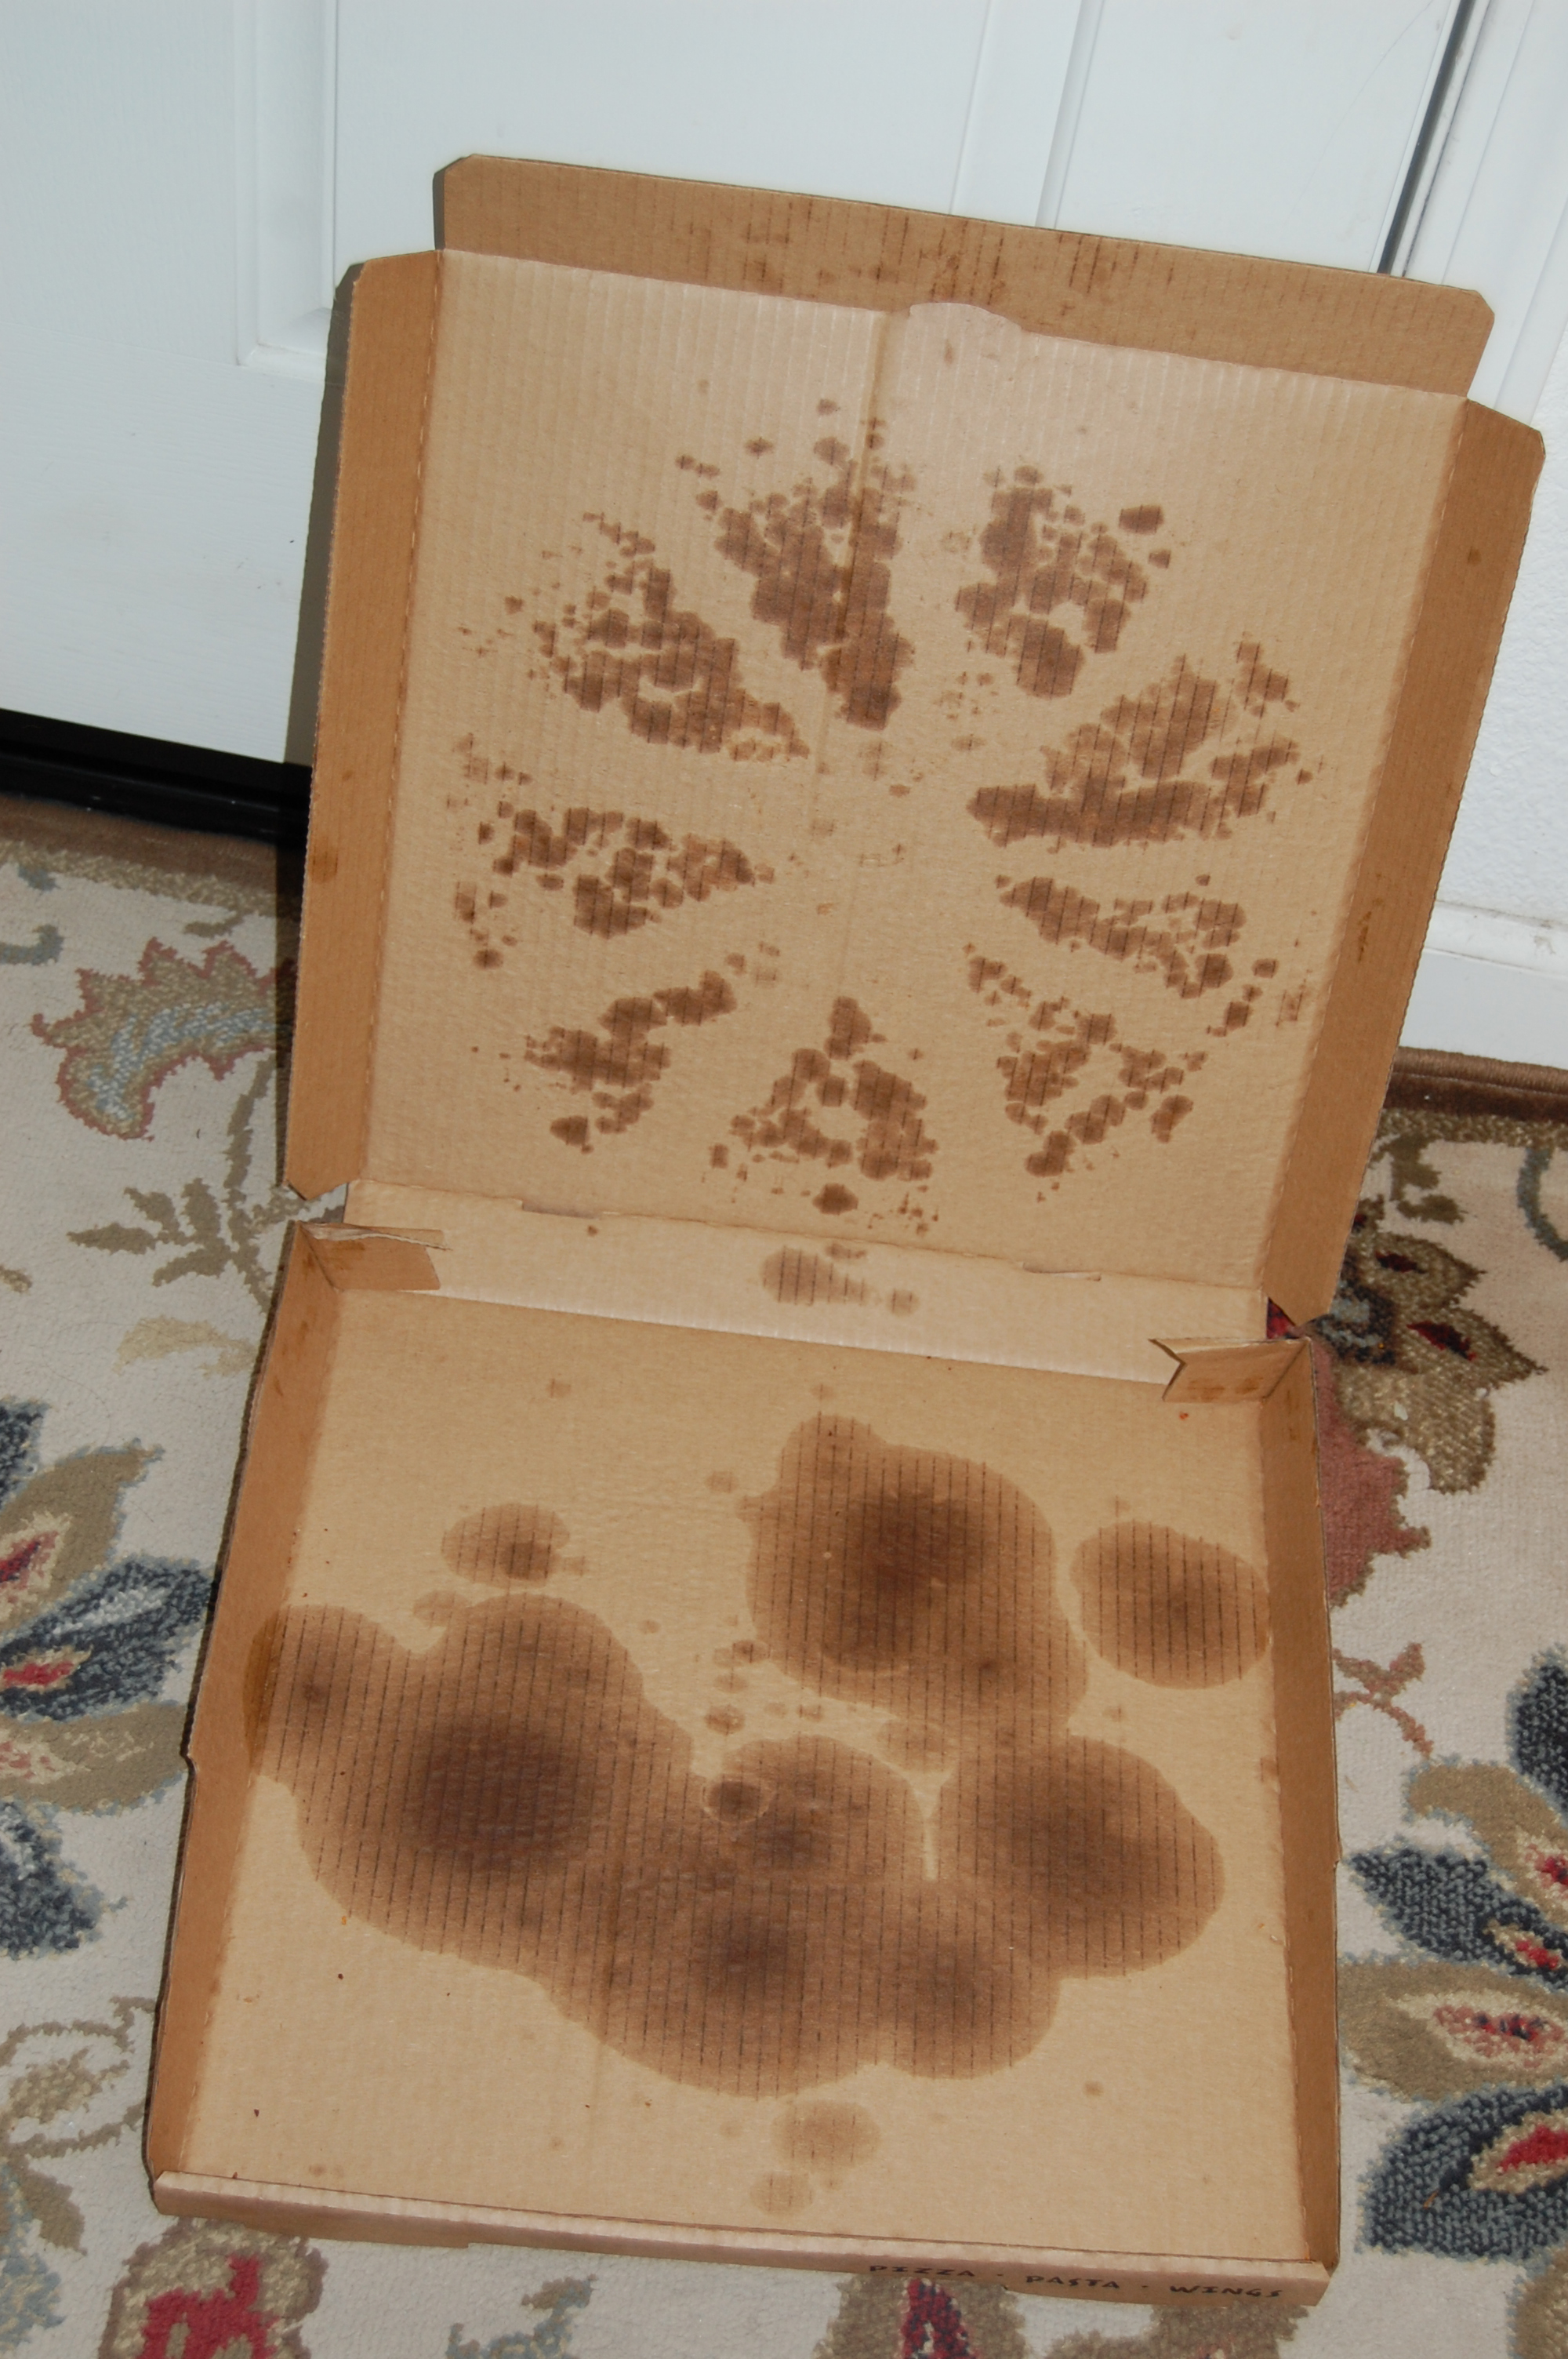 Greasy Pizza Box goes in the trash - What a waste of paper / cardboard!